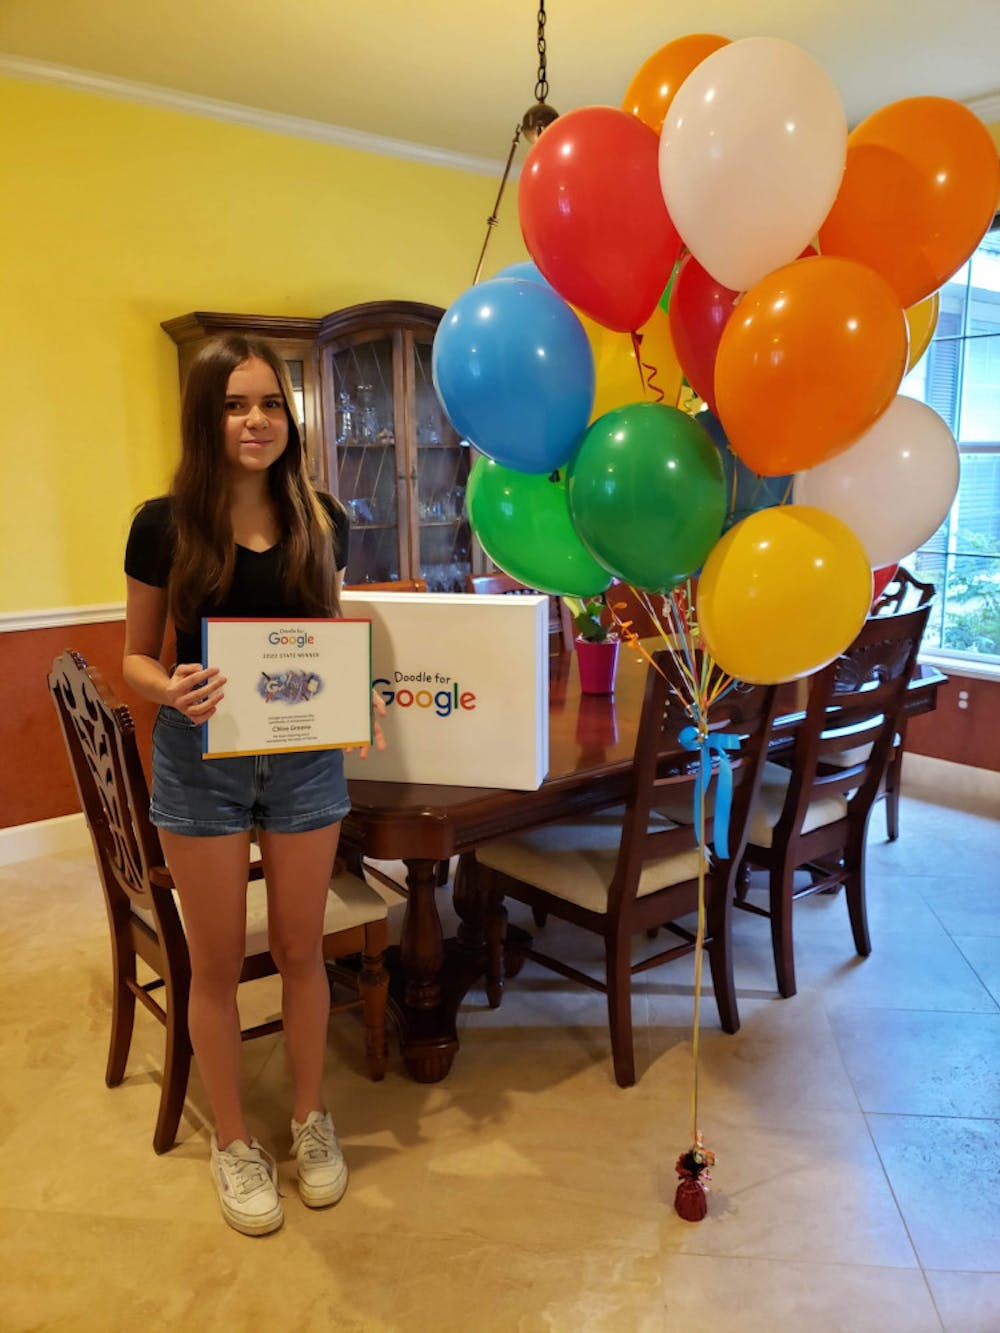 """<p><span id=""""docs-internal-guid-8542ae33-7fff-cca4-afb6-971827ab3f2d""""><span>Fifteen-year-old Chloe Greene, Florida's Doodle for Google finalist, was celebrated with two Google prizes and balloons Aug. 15.</span></span></p>"""